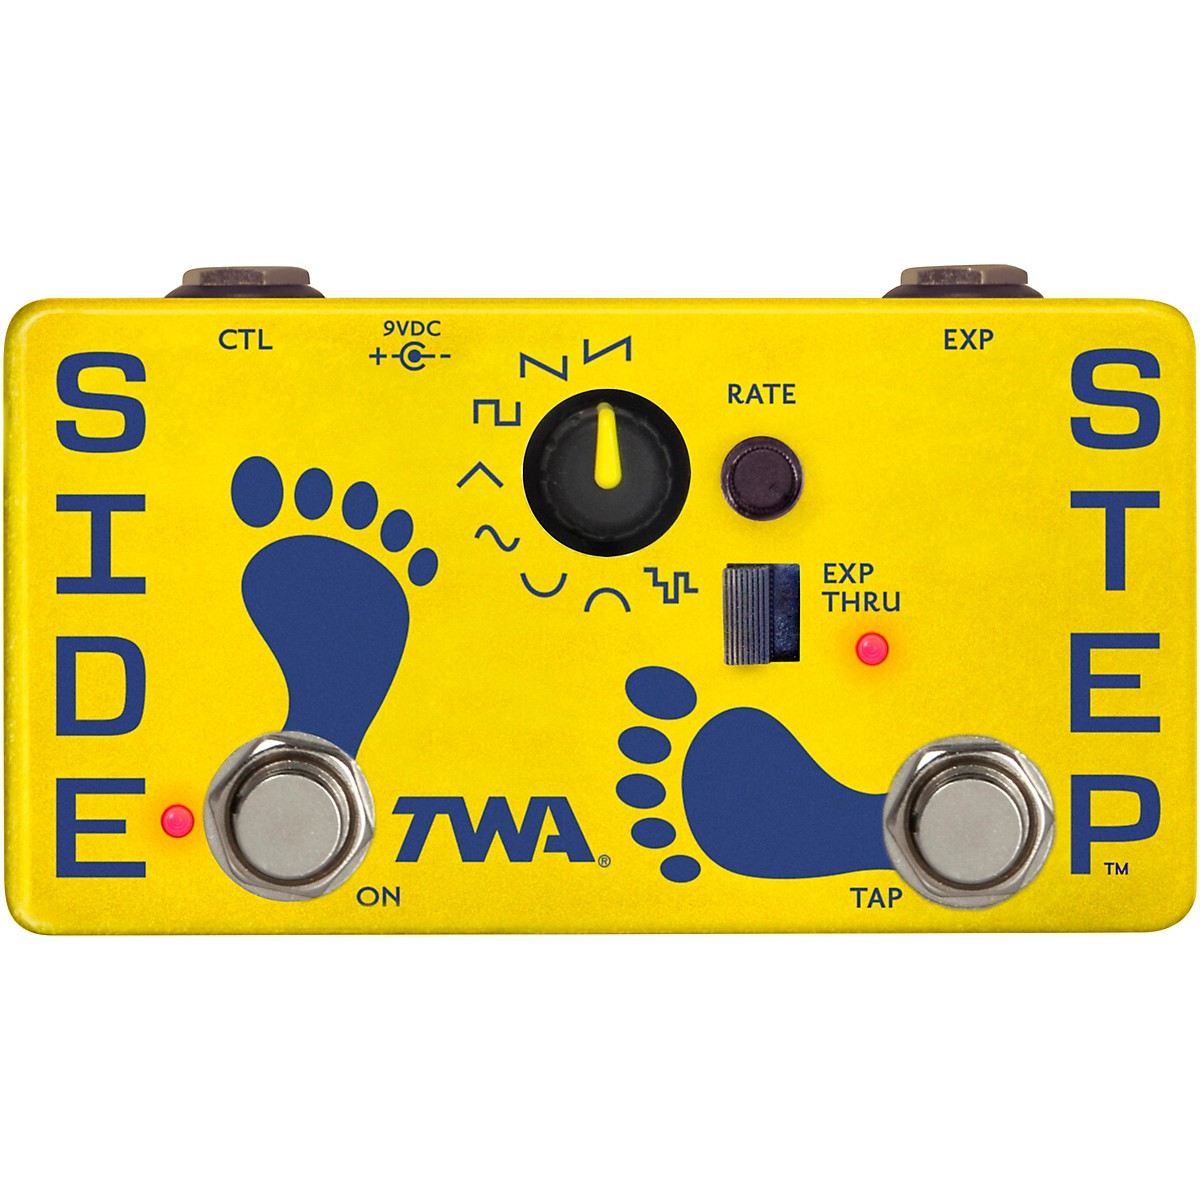 TWA SIDE STEP- universal variable state lfo